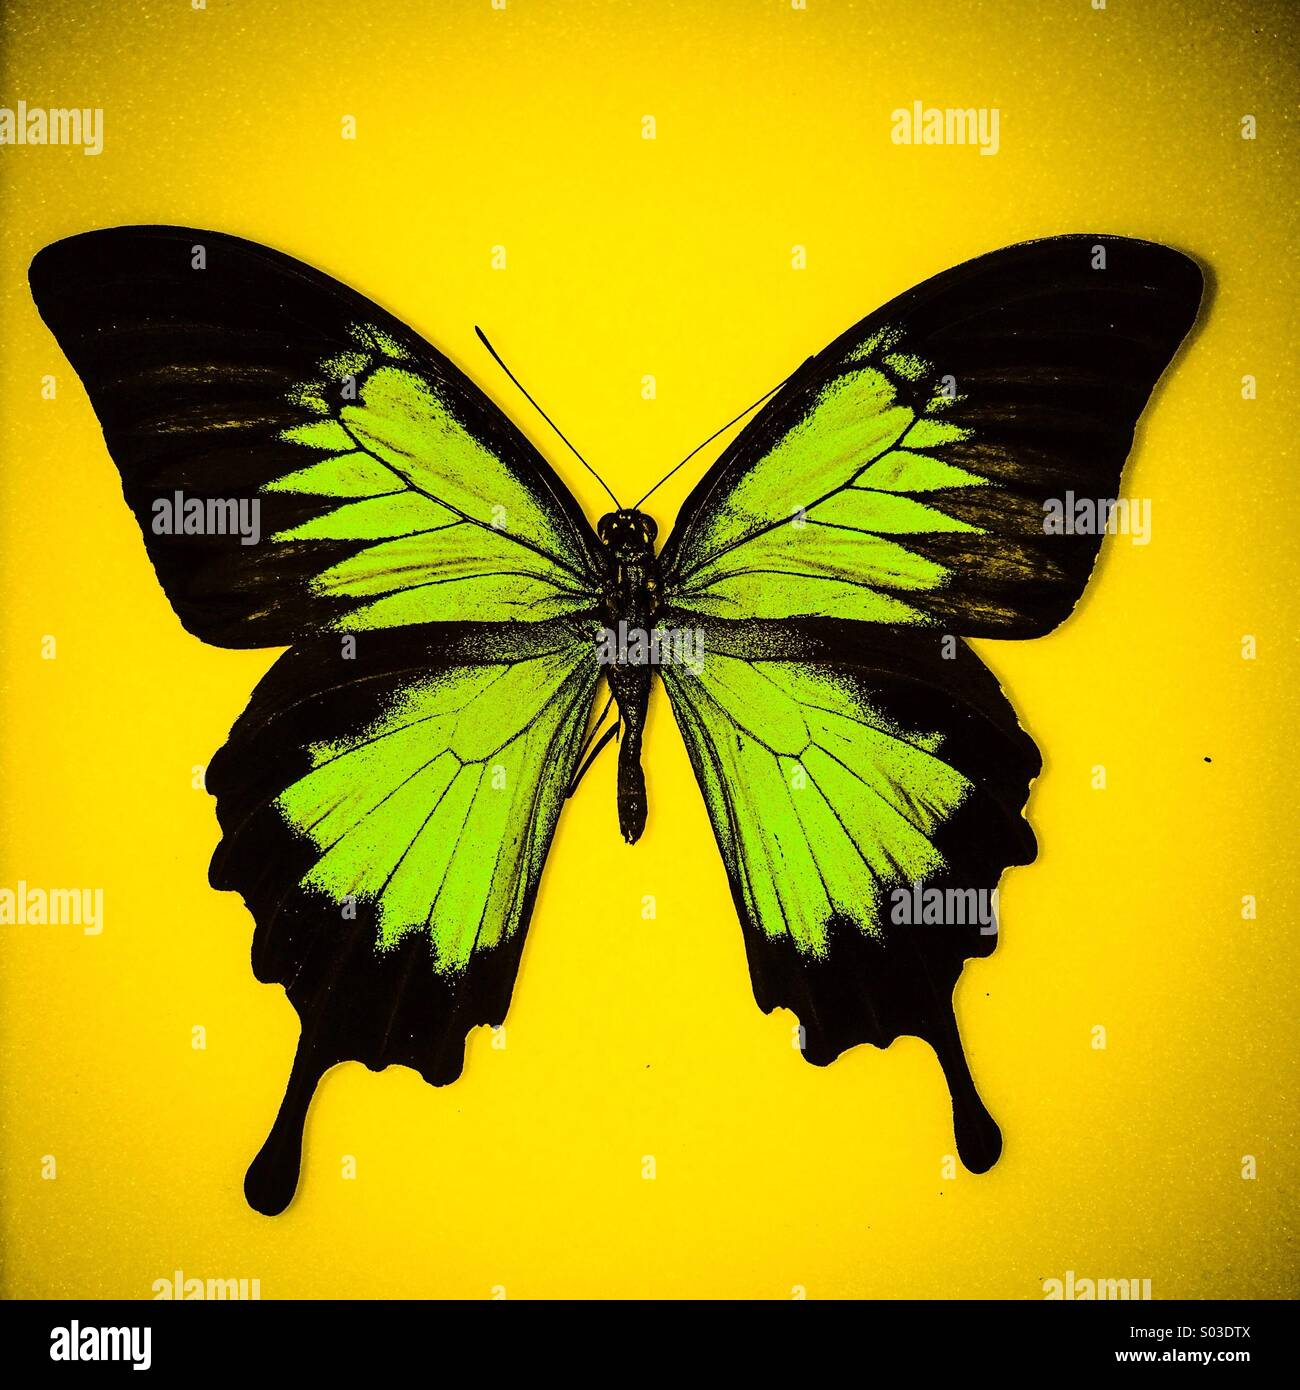 Butterfly Ulysses - Stock Image